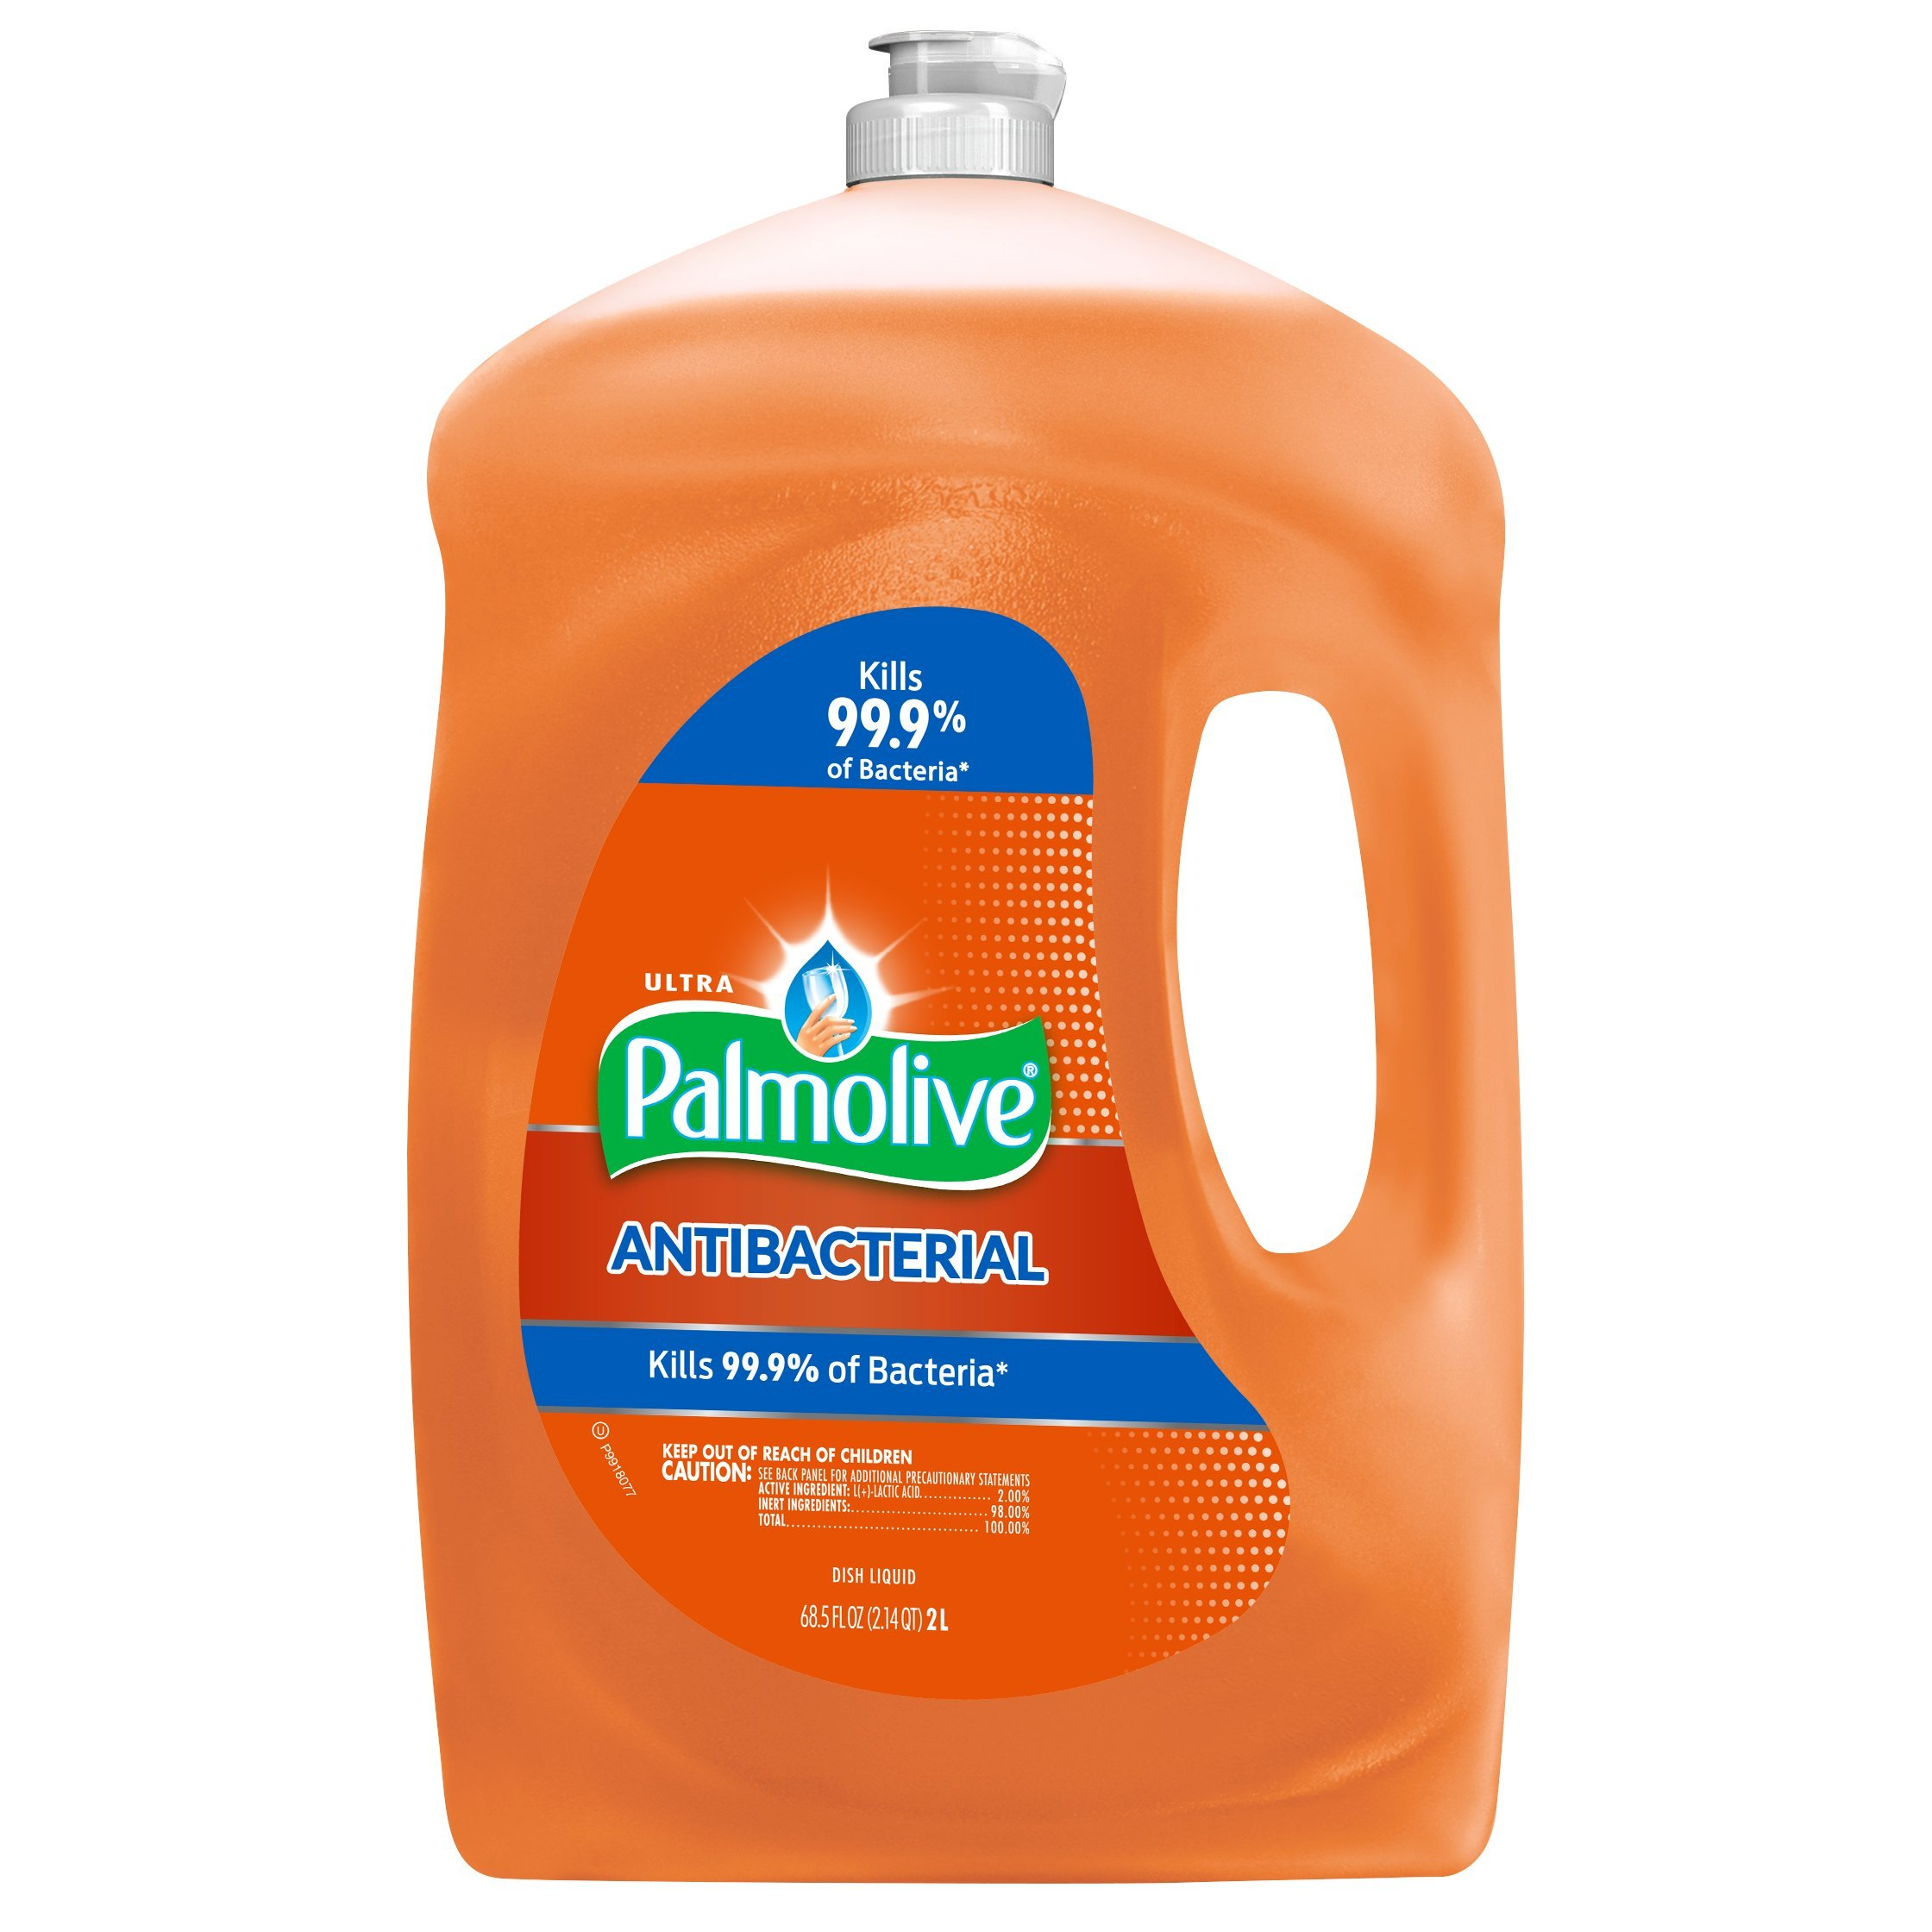 Palmolive Ultra Liquid Dish Soap, Antibacterial - 68.5 Fluid Ounce (4 Pack)